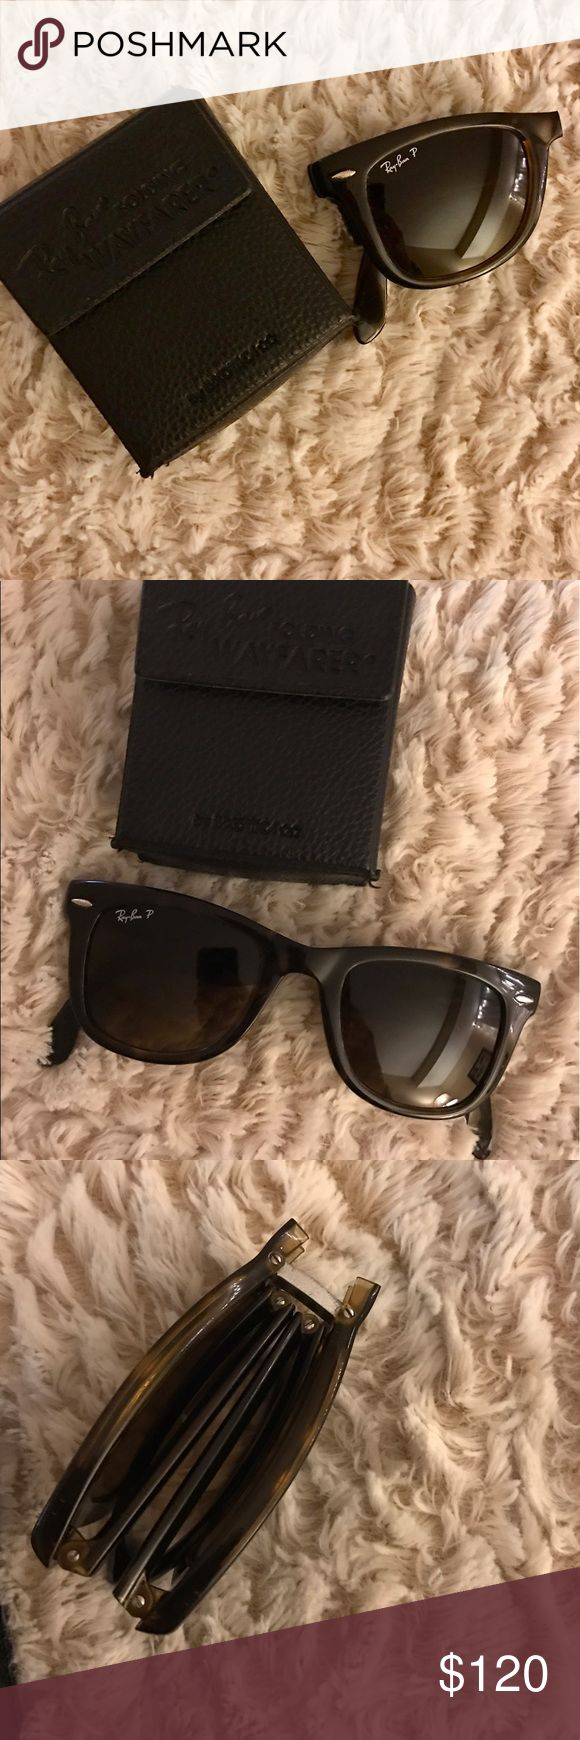 Folding Ray Ban wayfarer ❗️Polarized Polarized, in amazing condition Ray-Ban Accessories Sunglasses